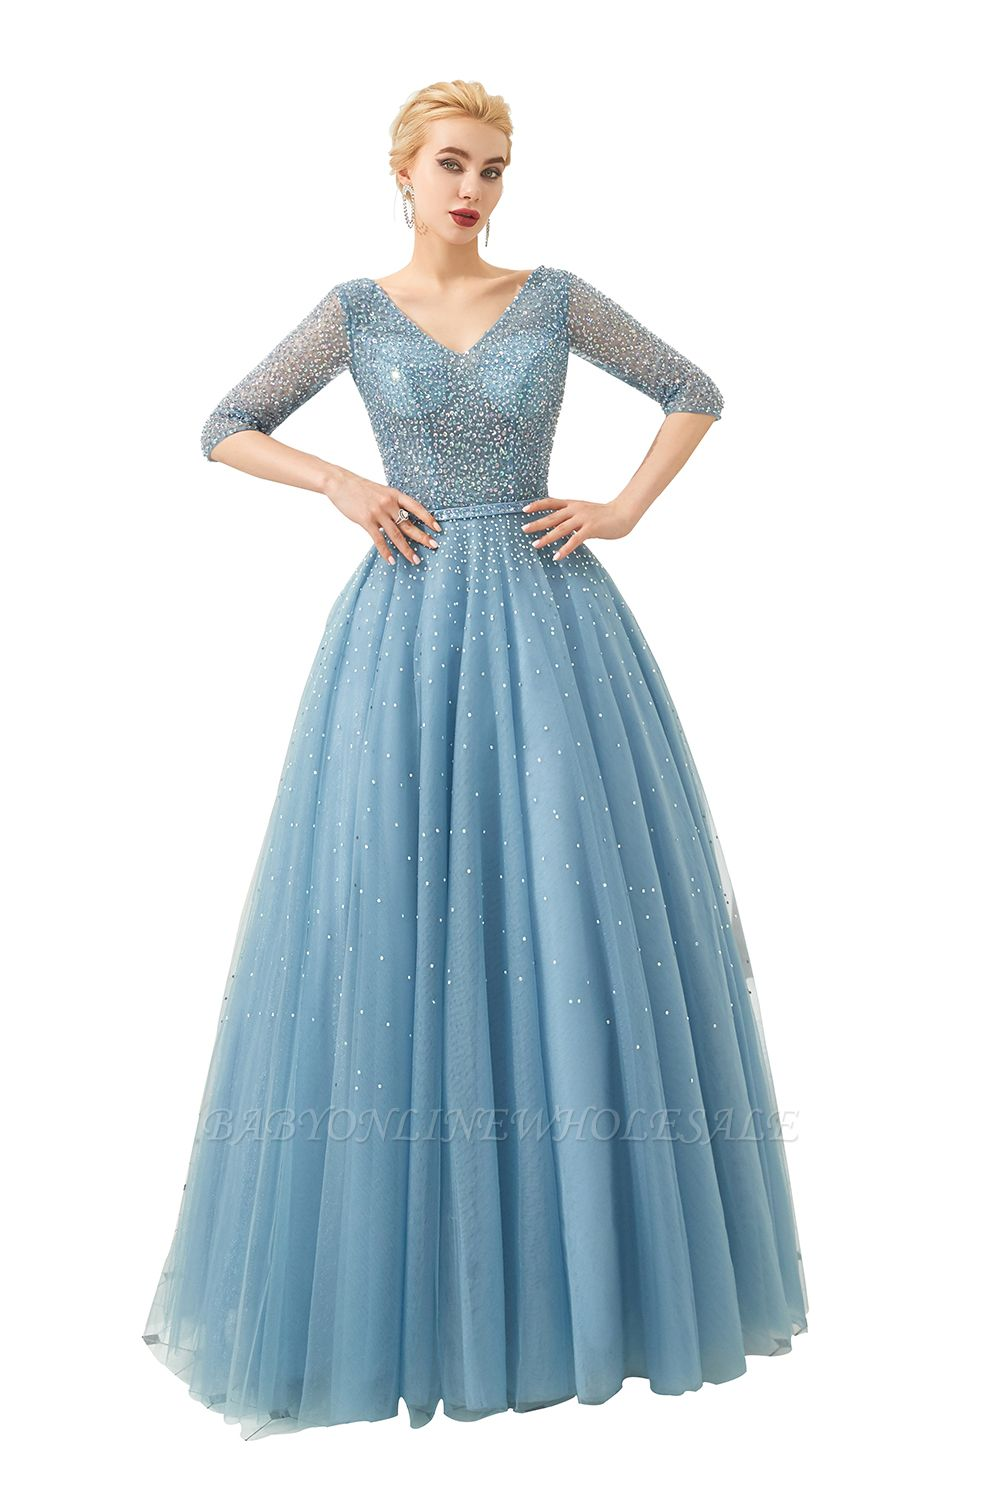 Harold   Discount V-neck Fully beaded 2/3 sleeves A-line Tulle Long Prom Dress